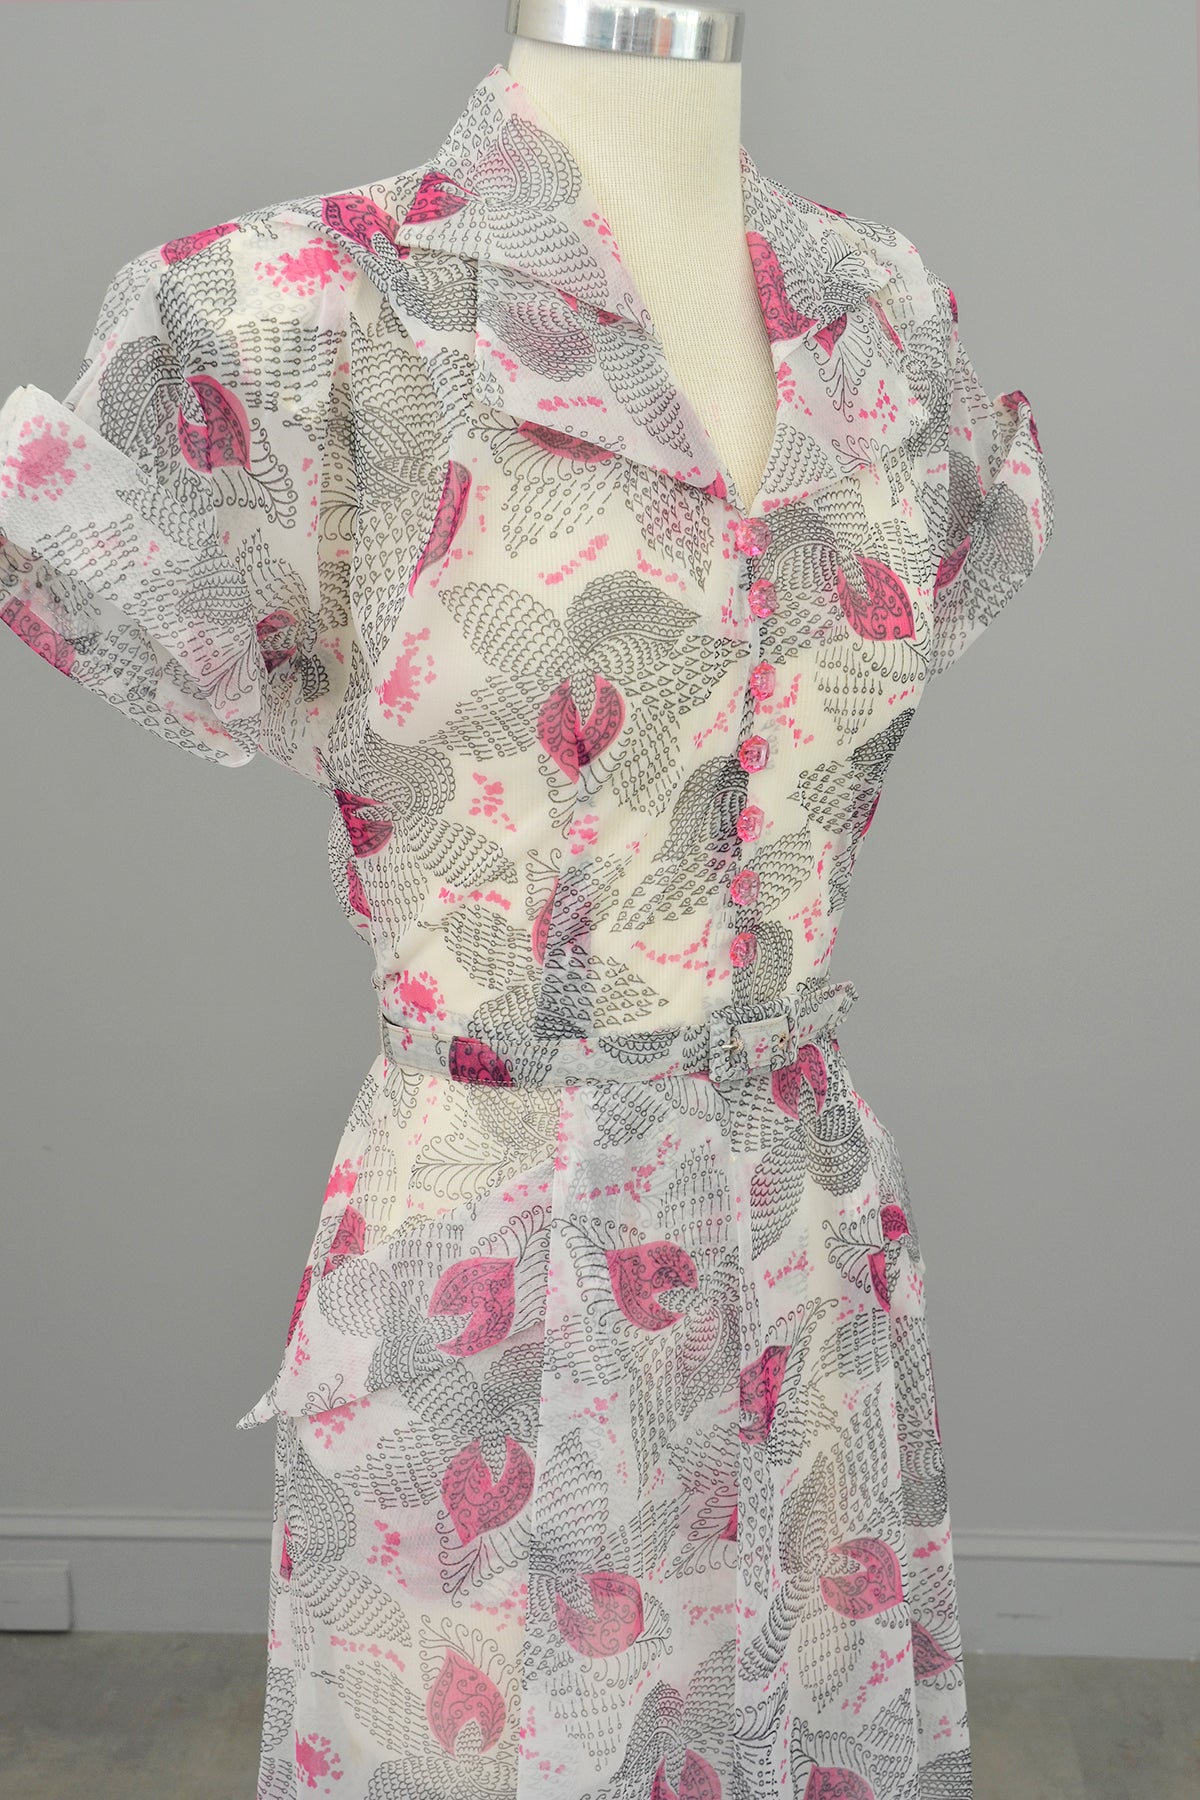 1940s Hot Pink Retro Novelty Print Dress w Pockets + Double Collar